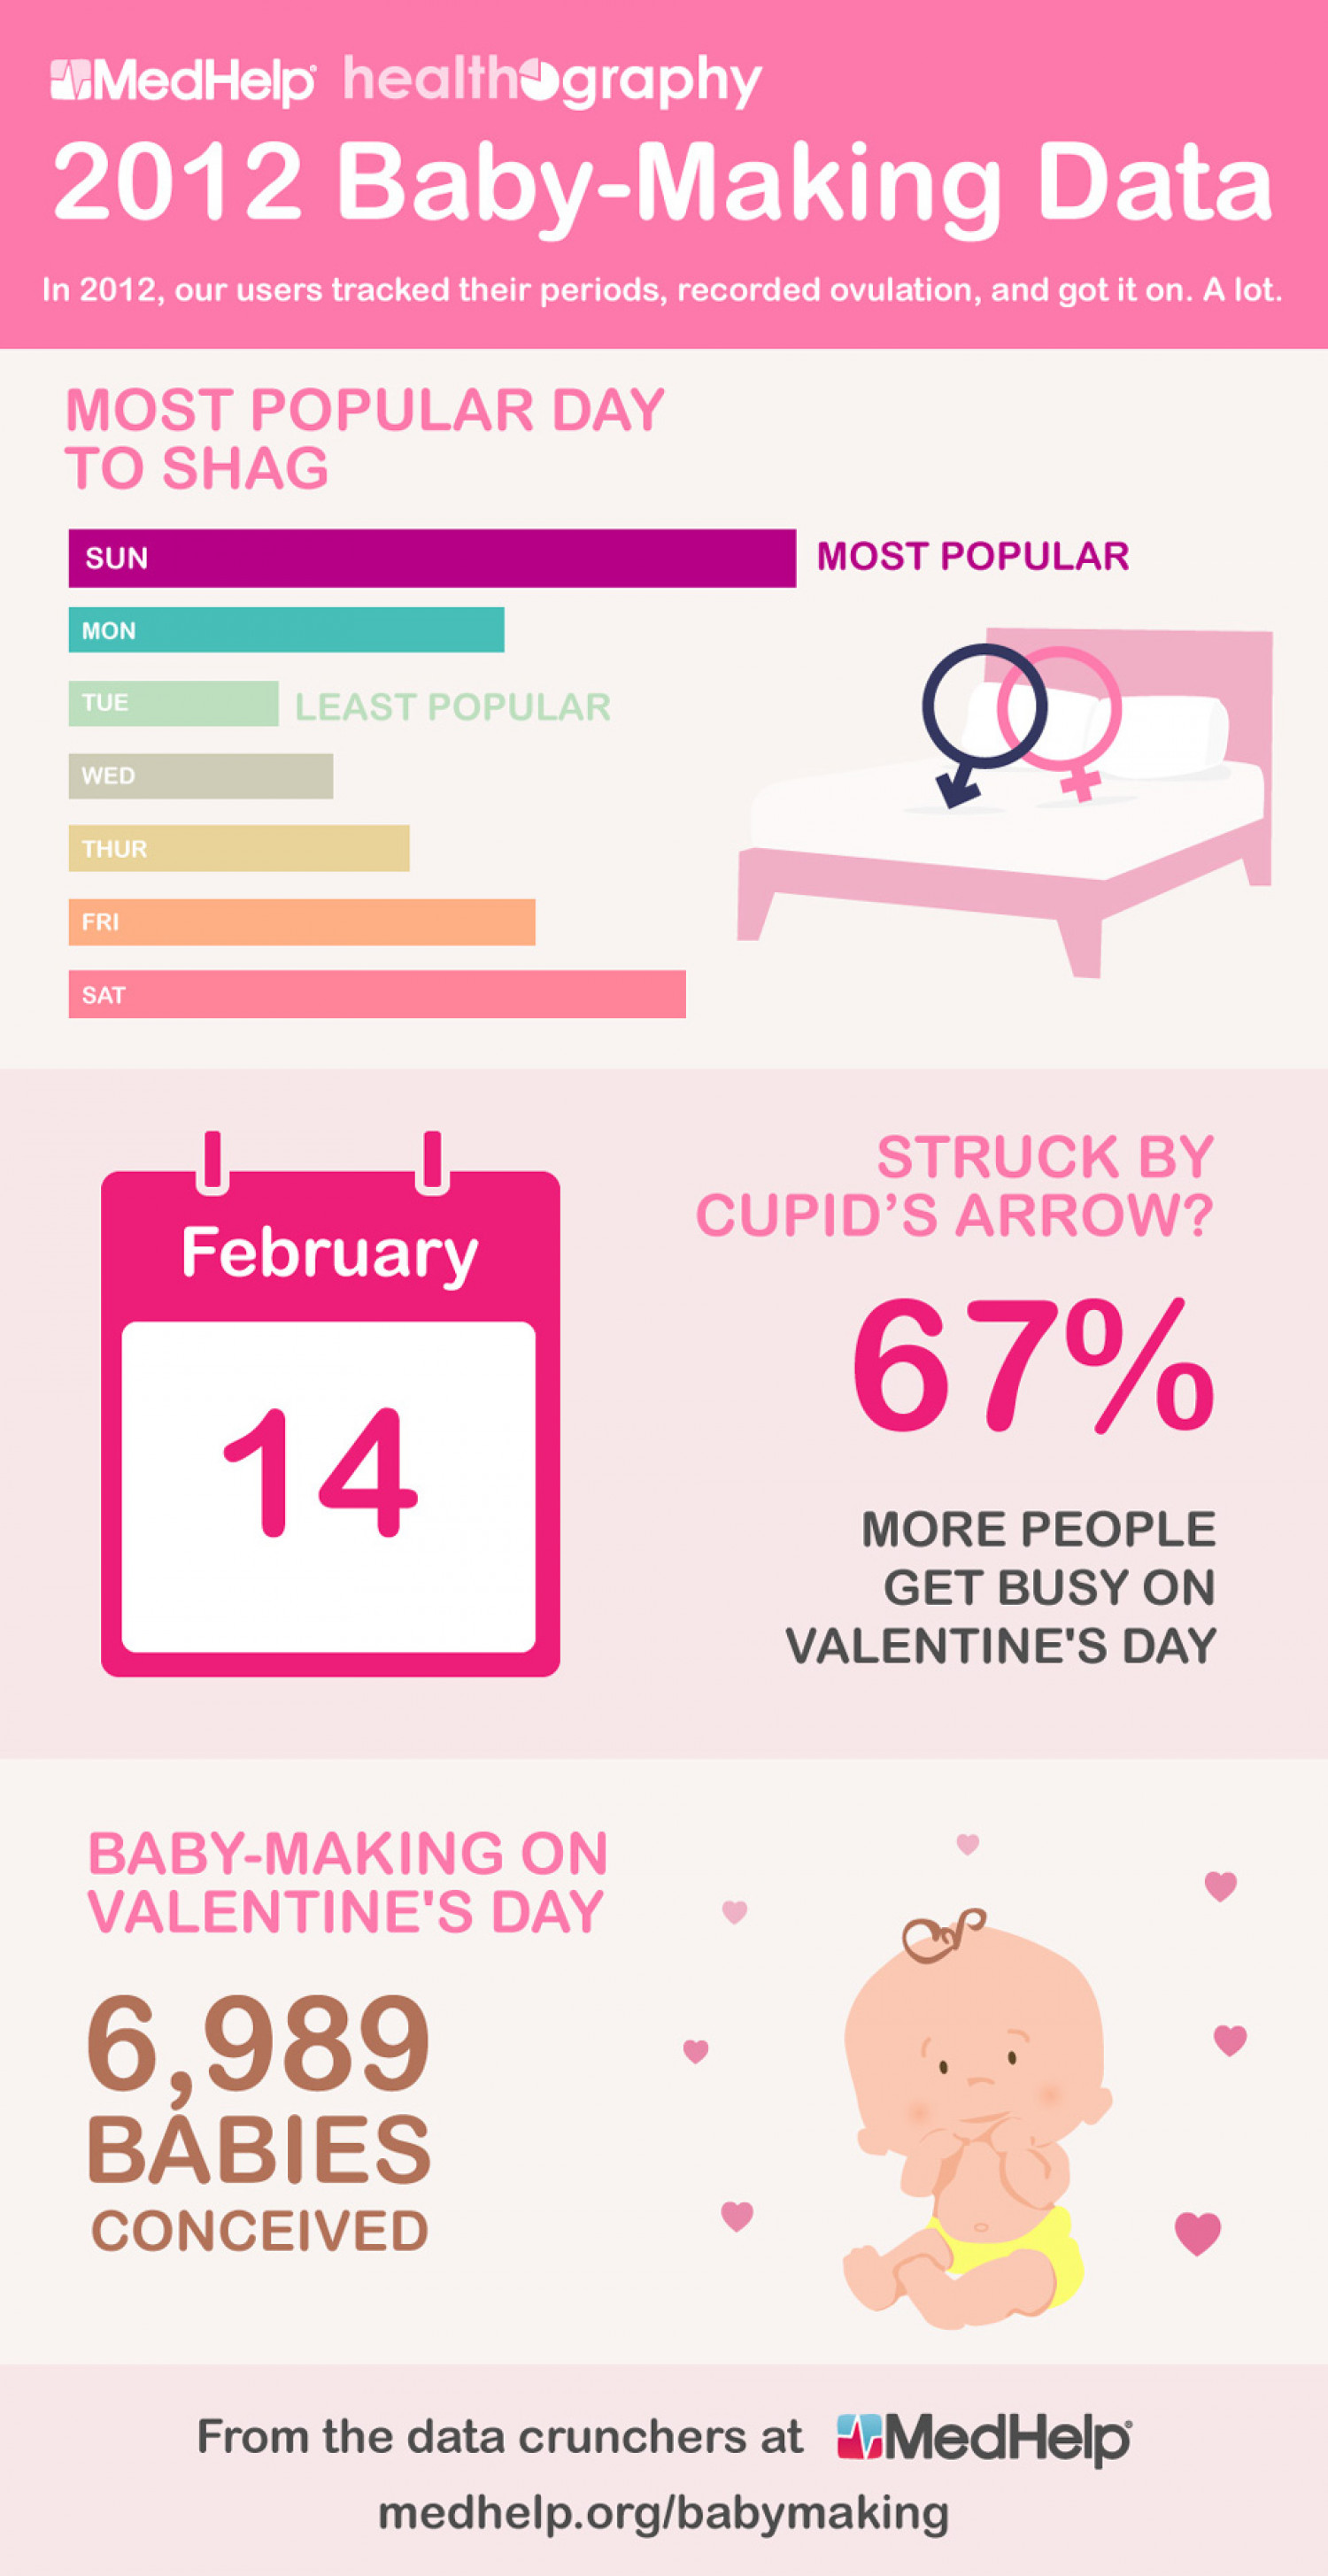 MedHelp's 2012 Baby-Making Data Infographic